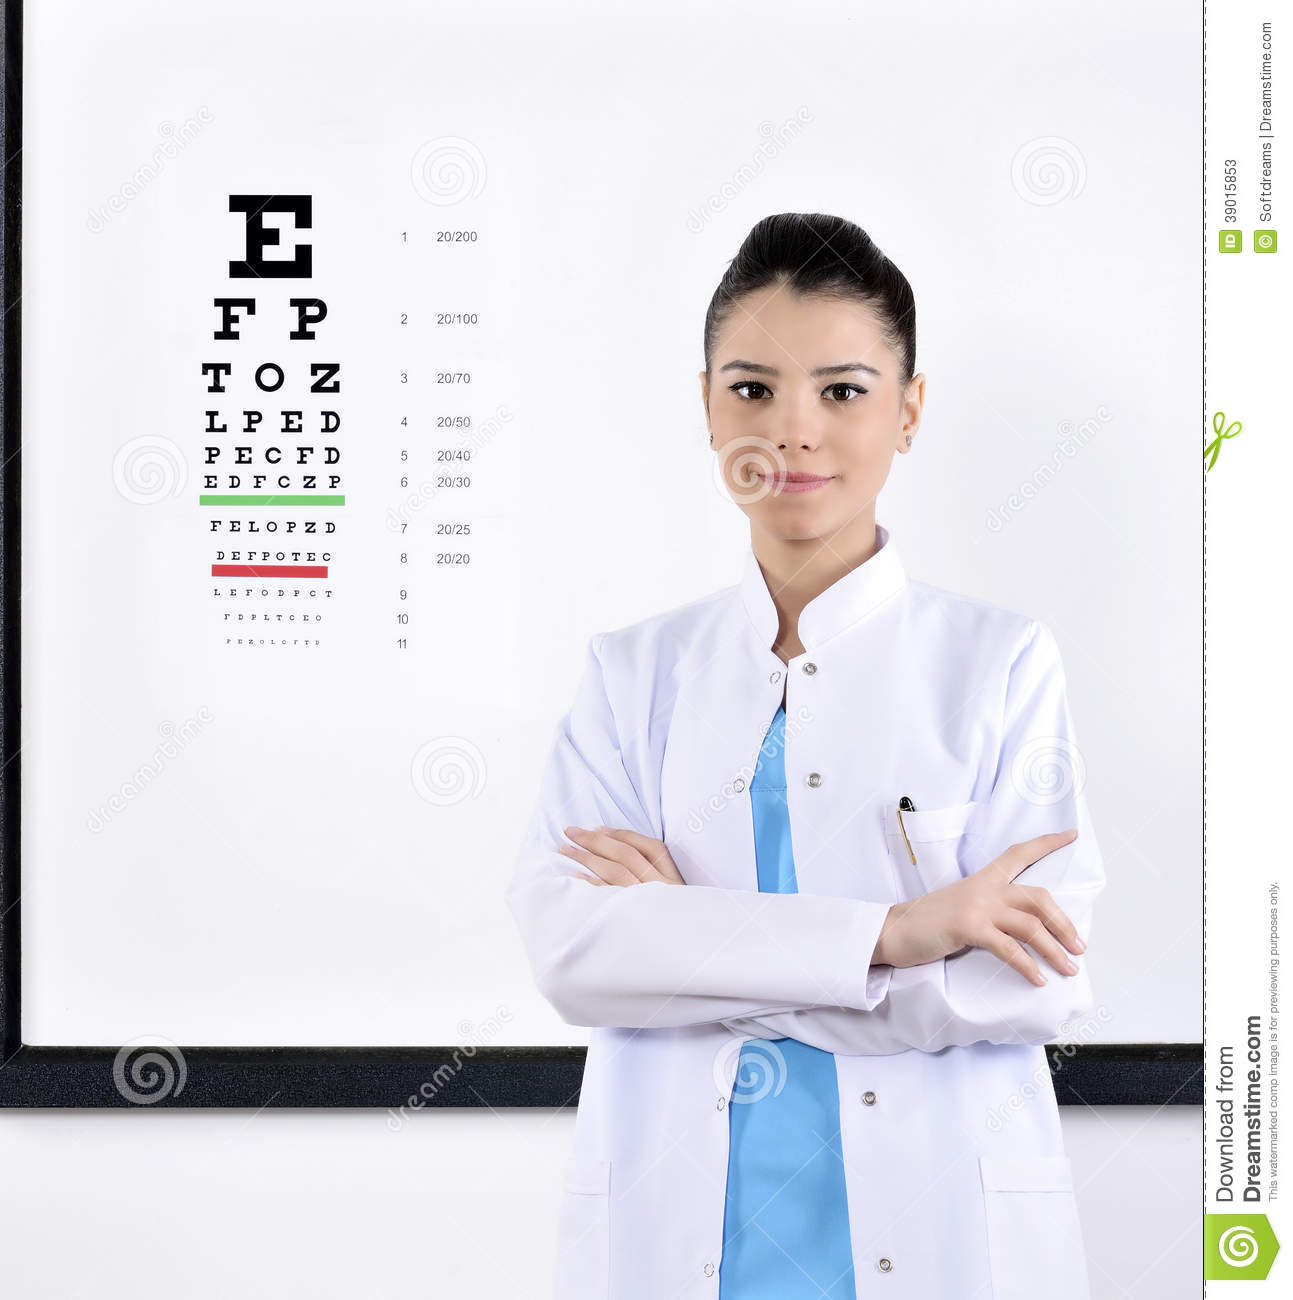 Optiker/Optometriker